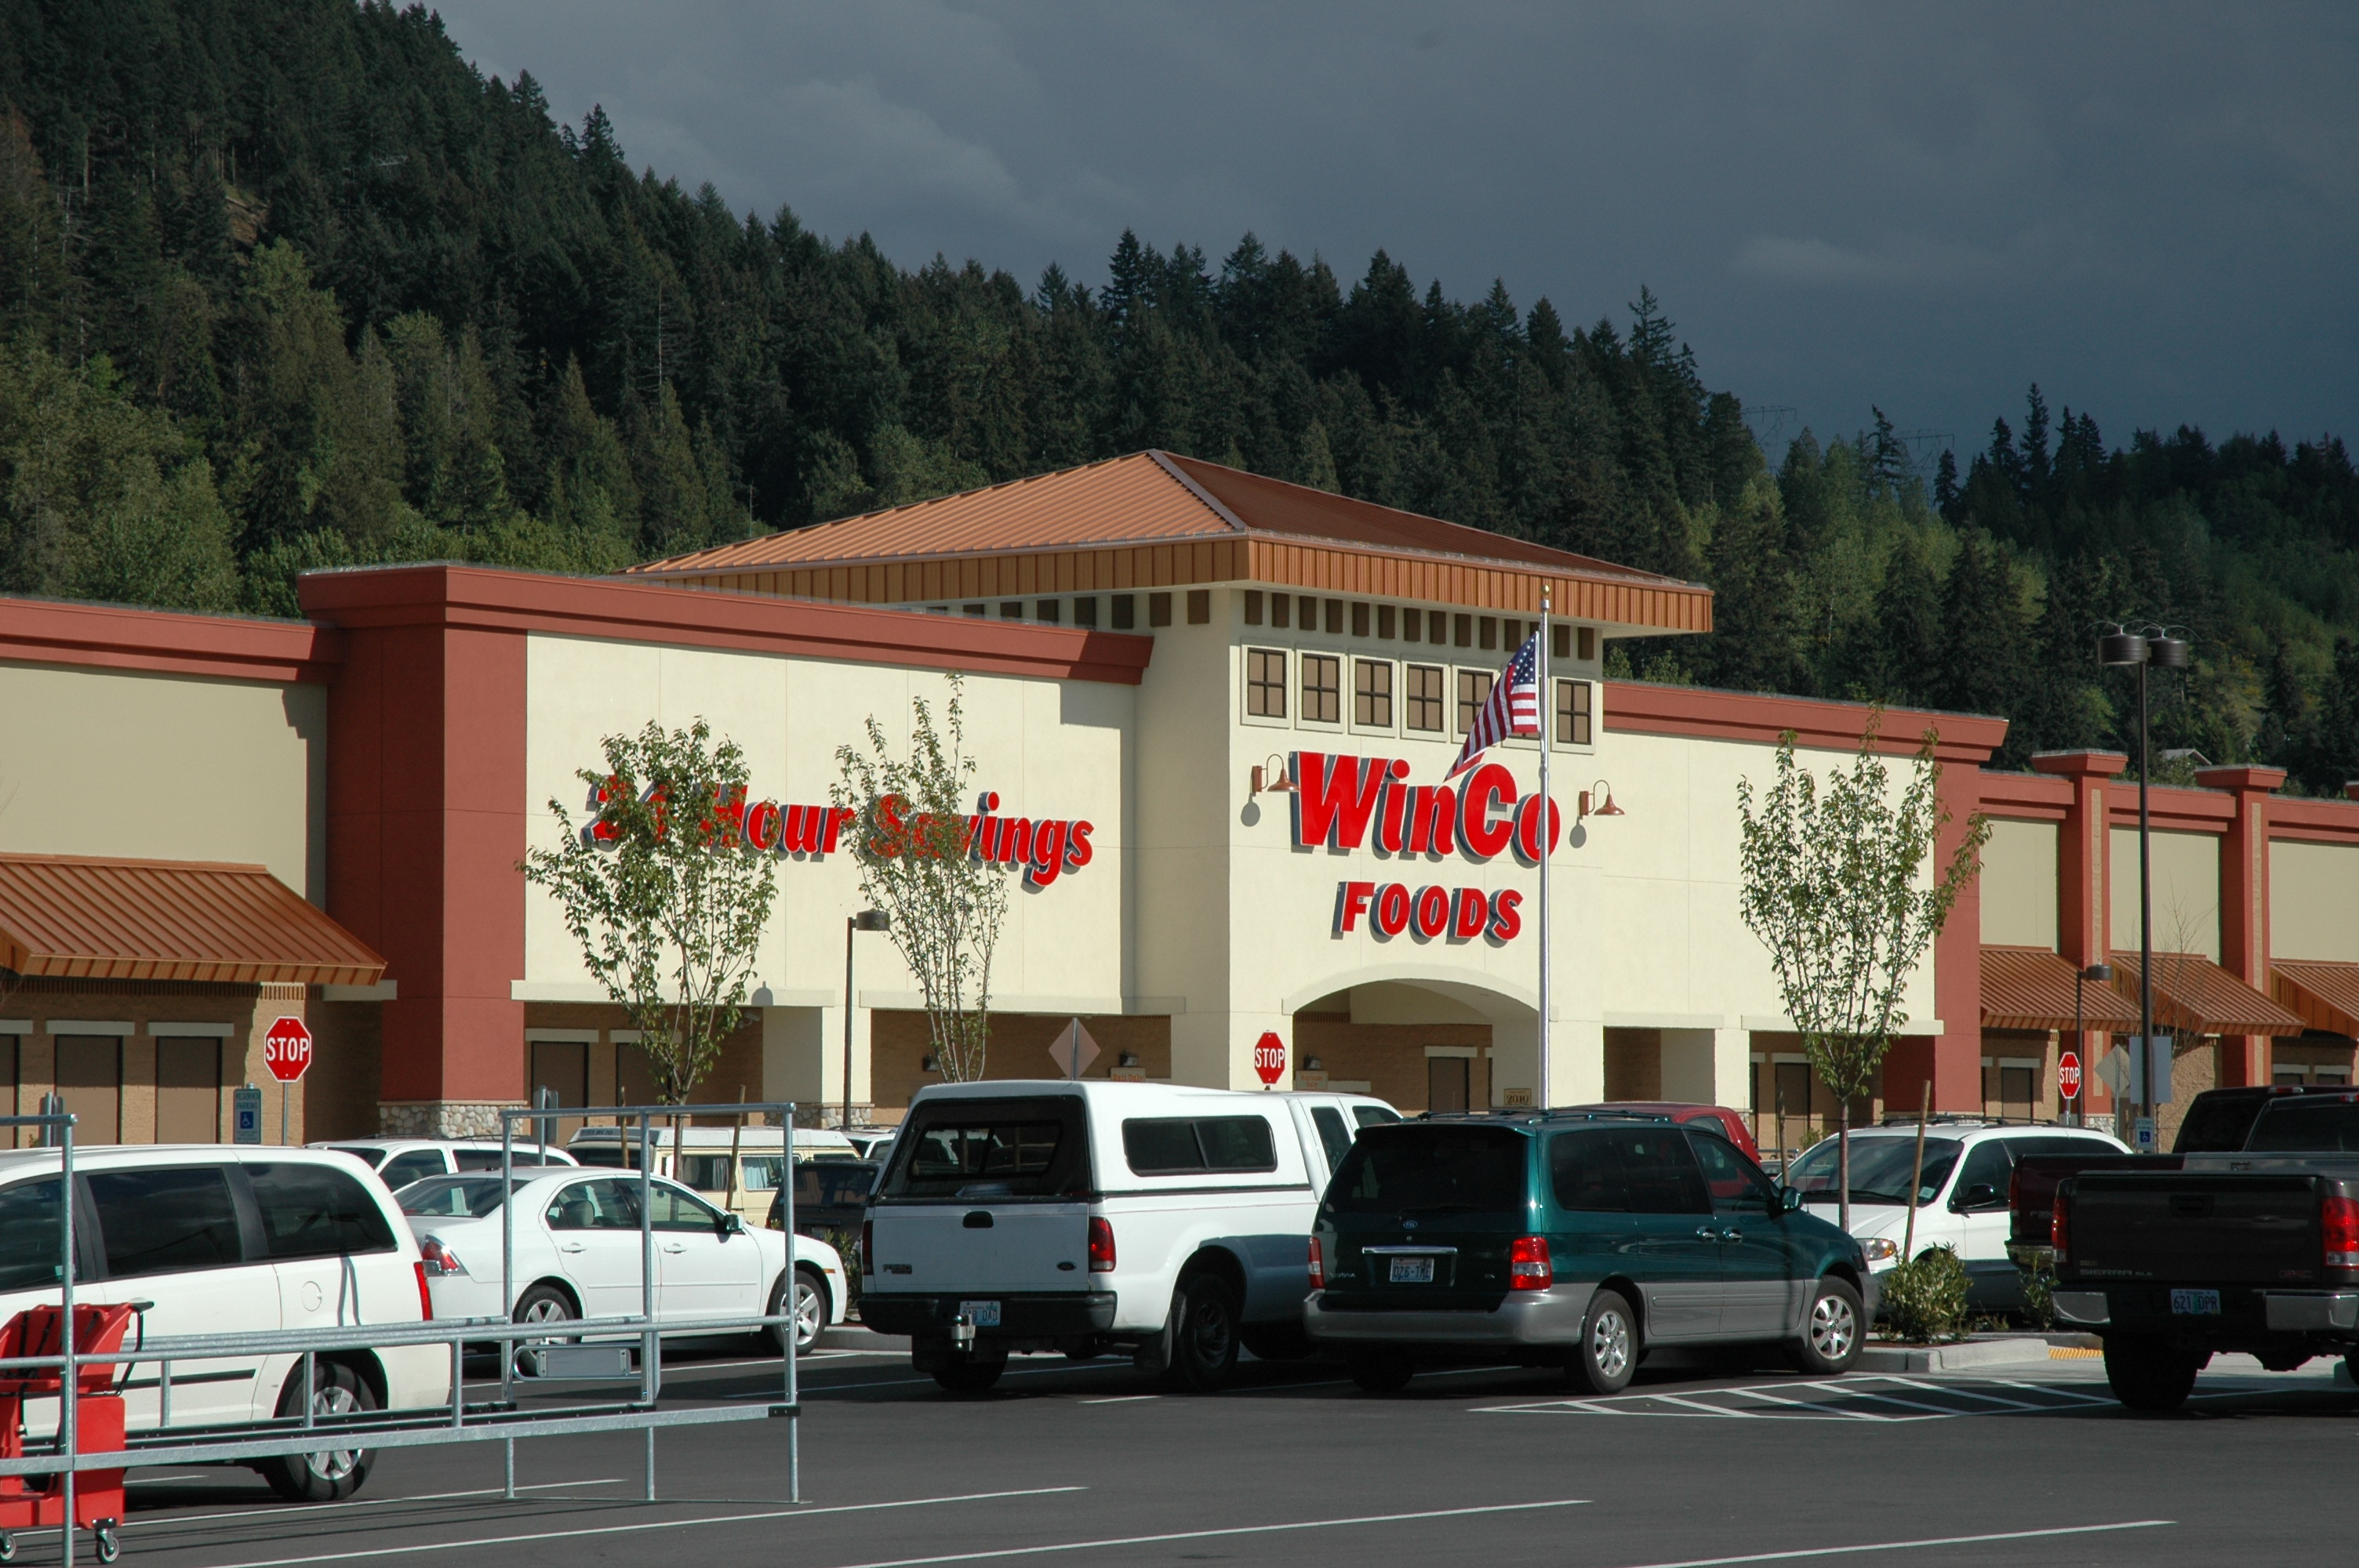 winco near me, Winco hours, winco foods near me, Winco locations, winco foods location